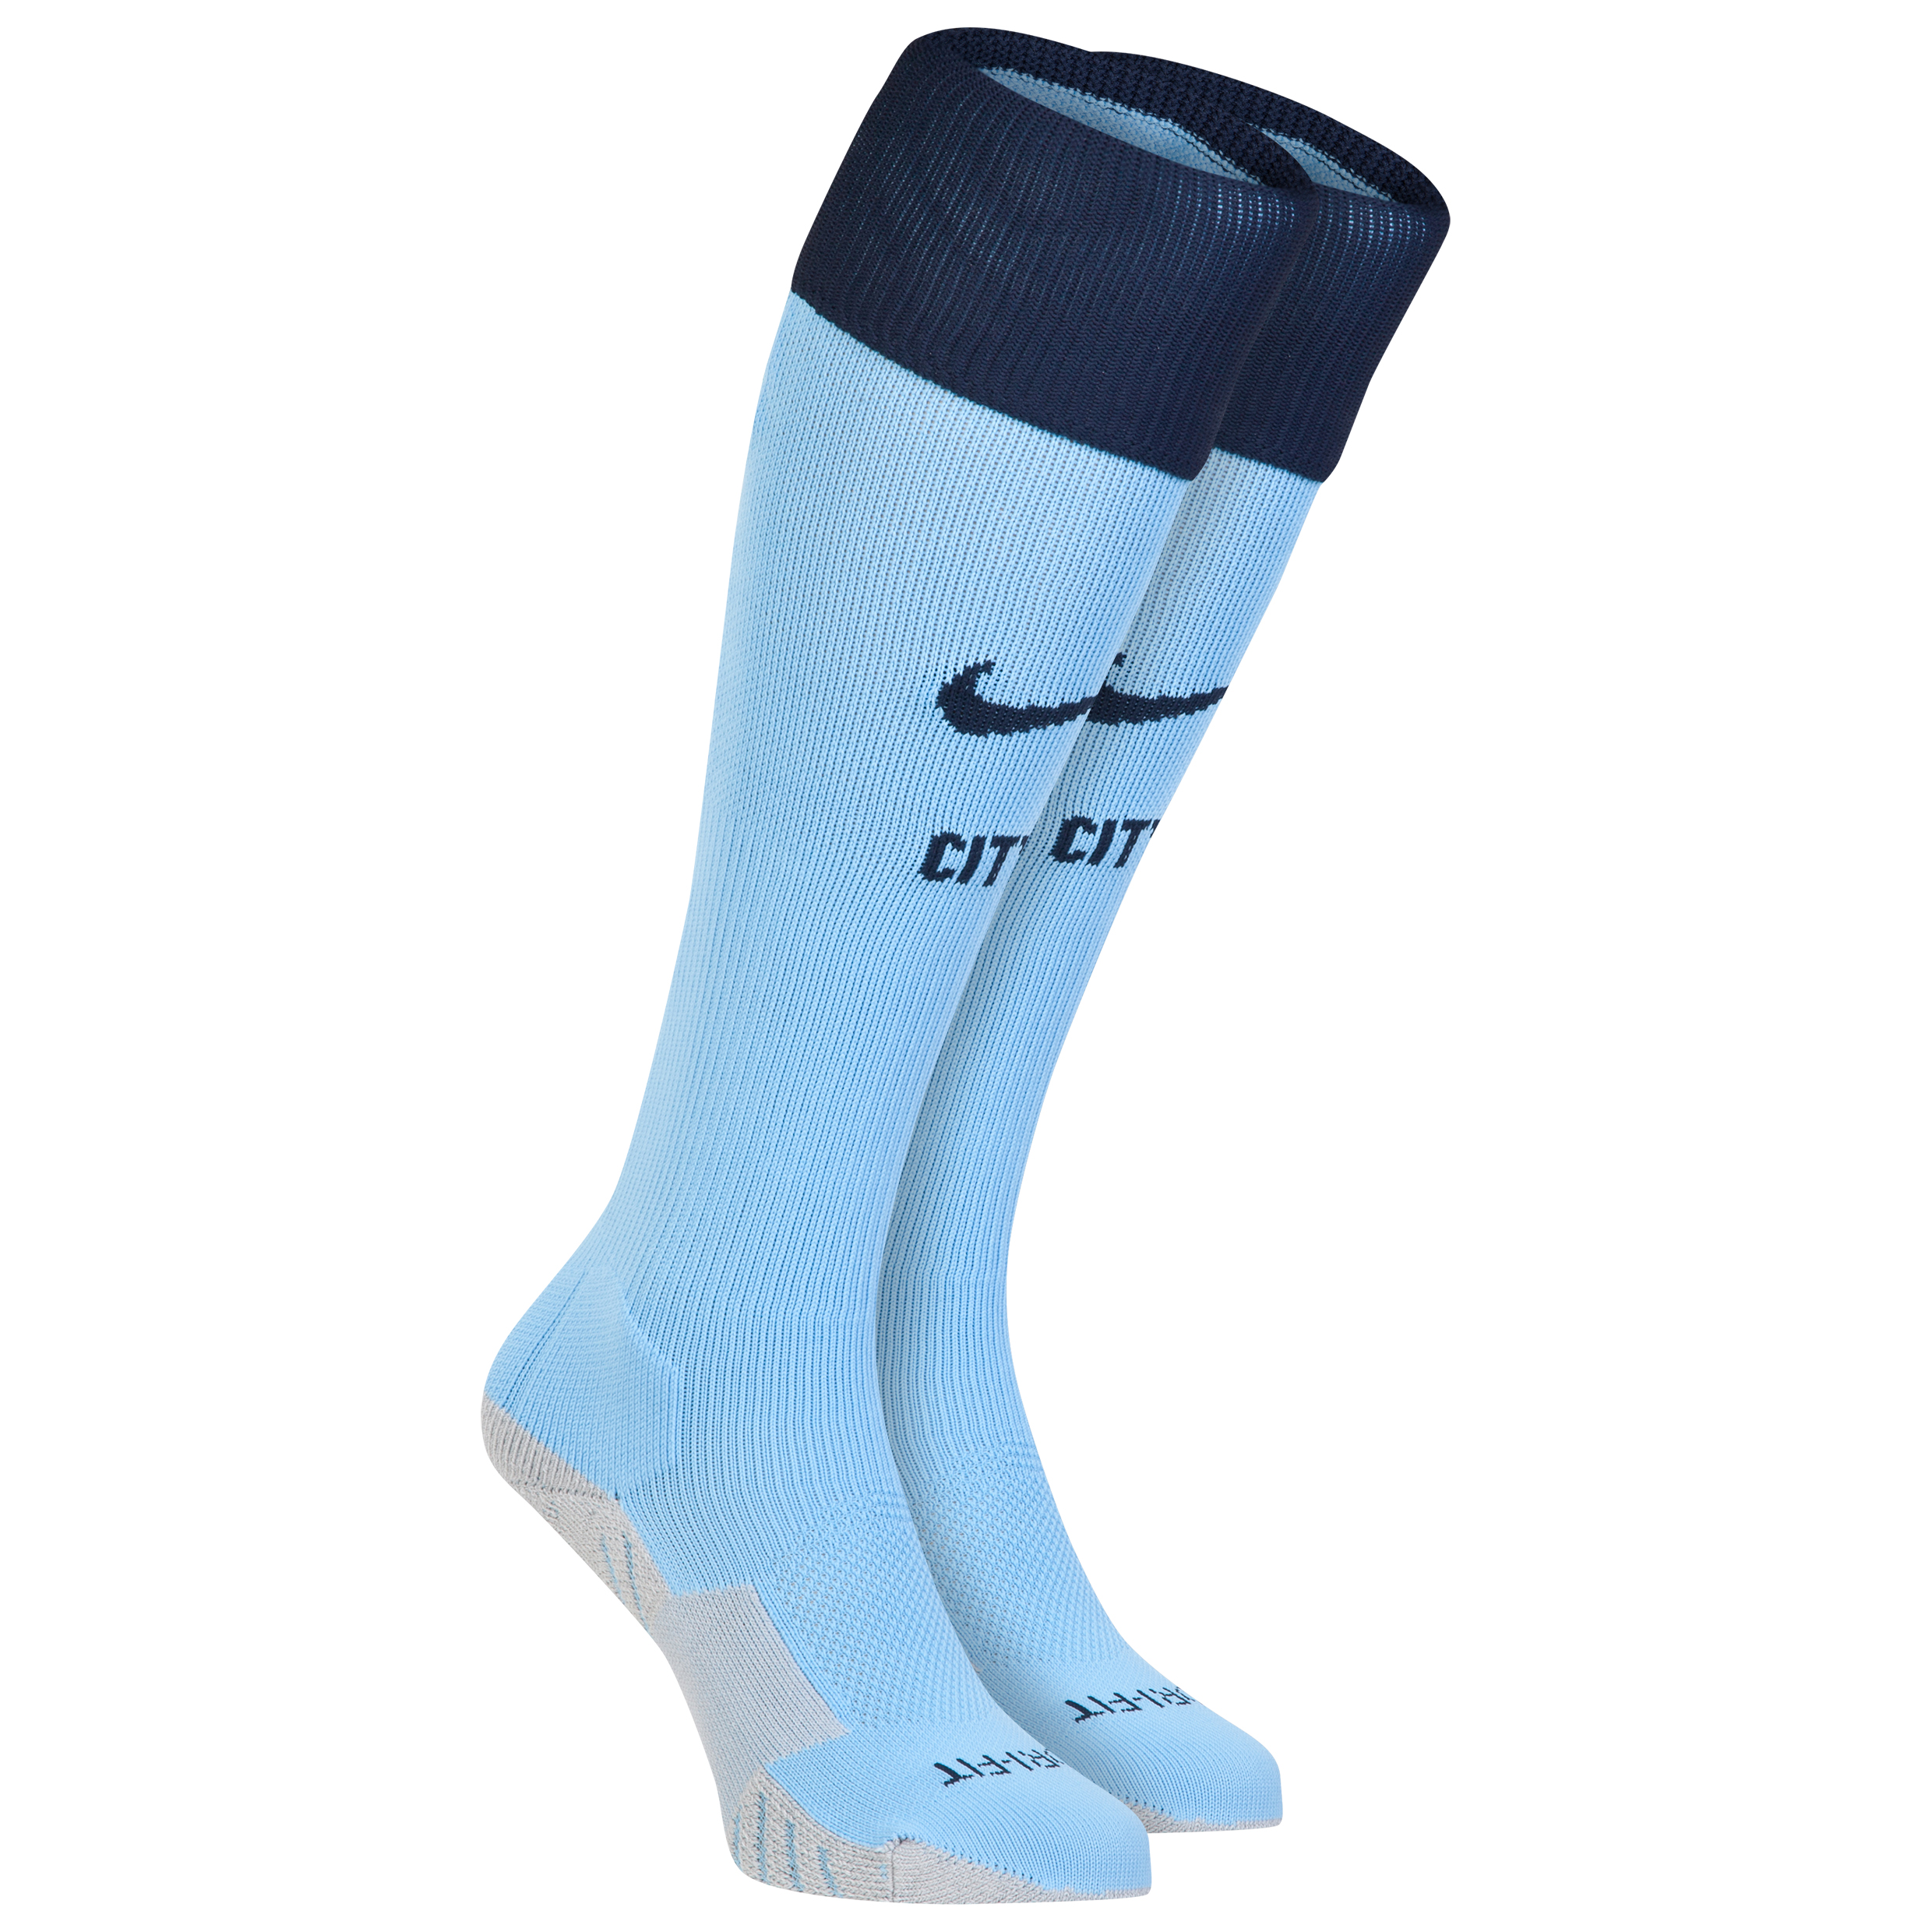 Manchester City Home Socks 2014/15 Sky Blue